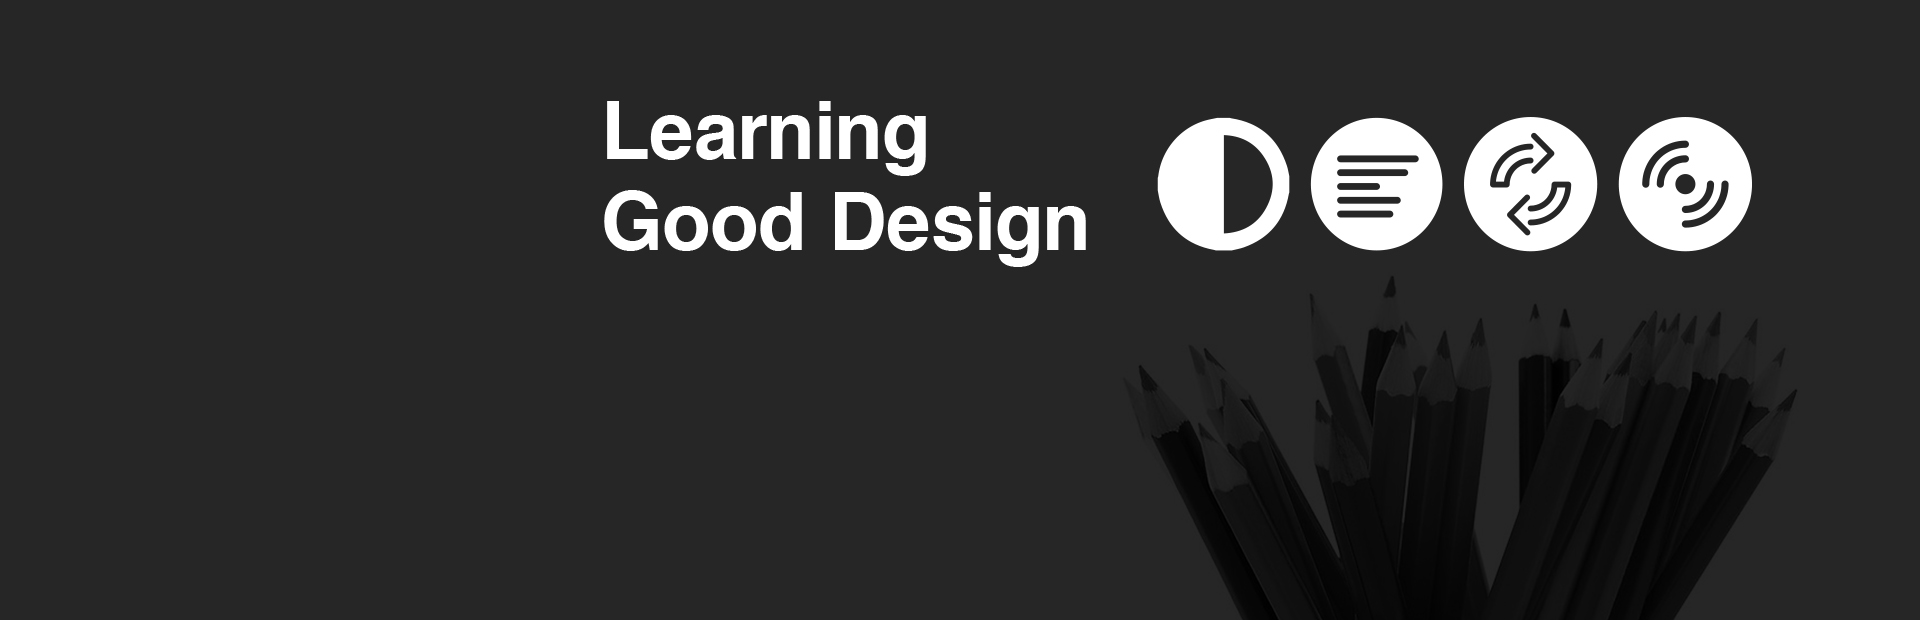 Learning Good Design